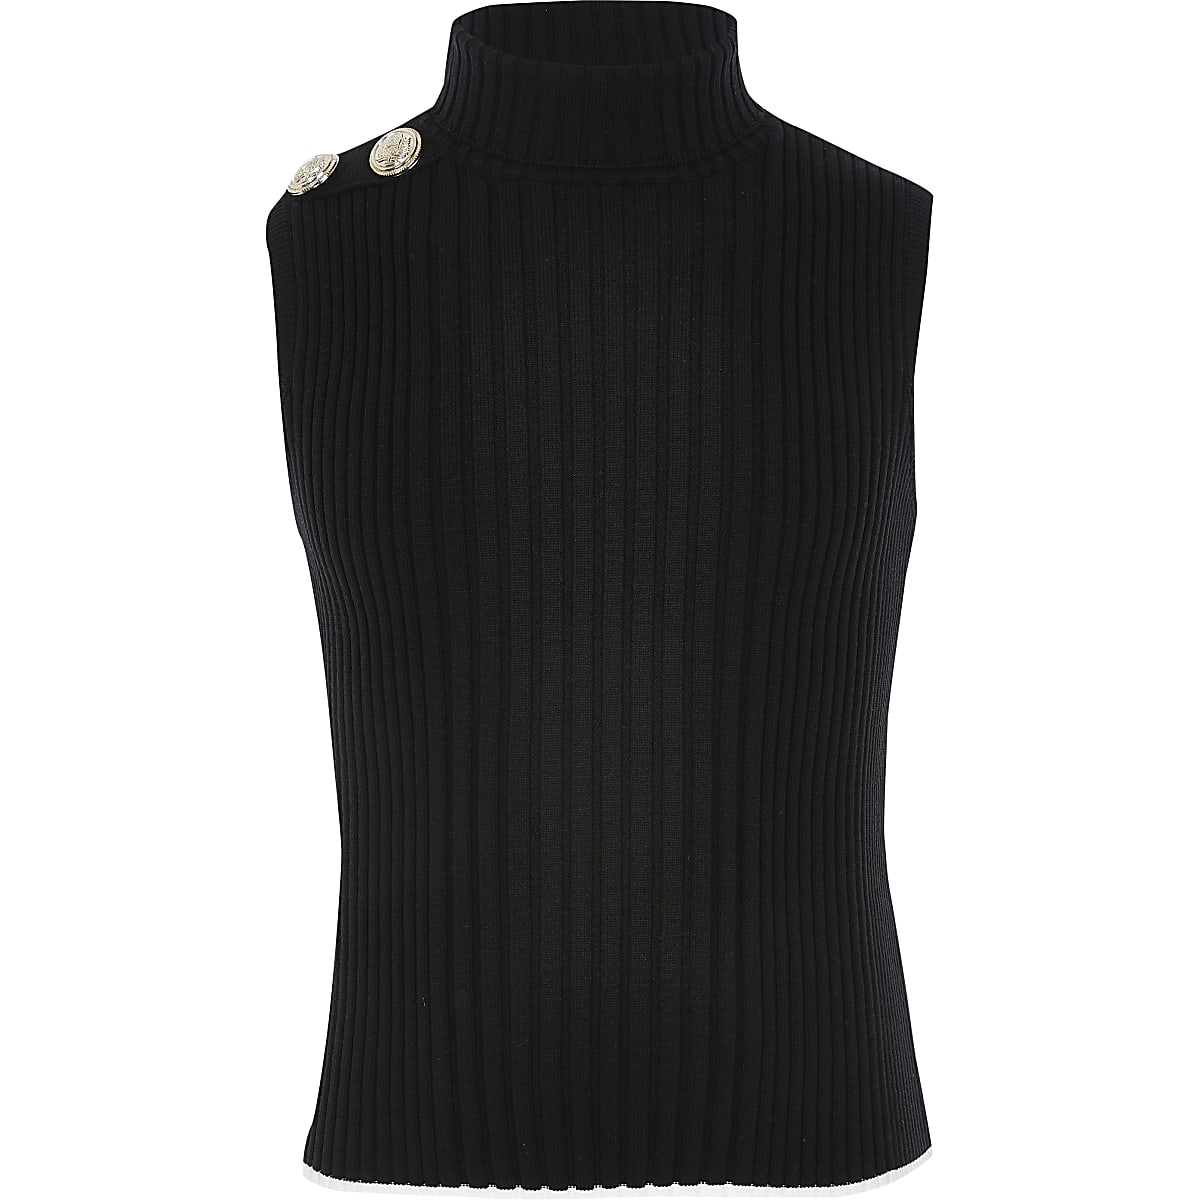 Girls black roll neck knitted tank top